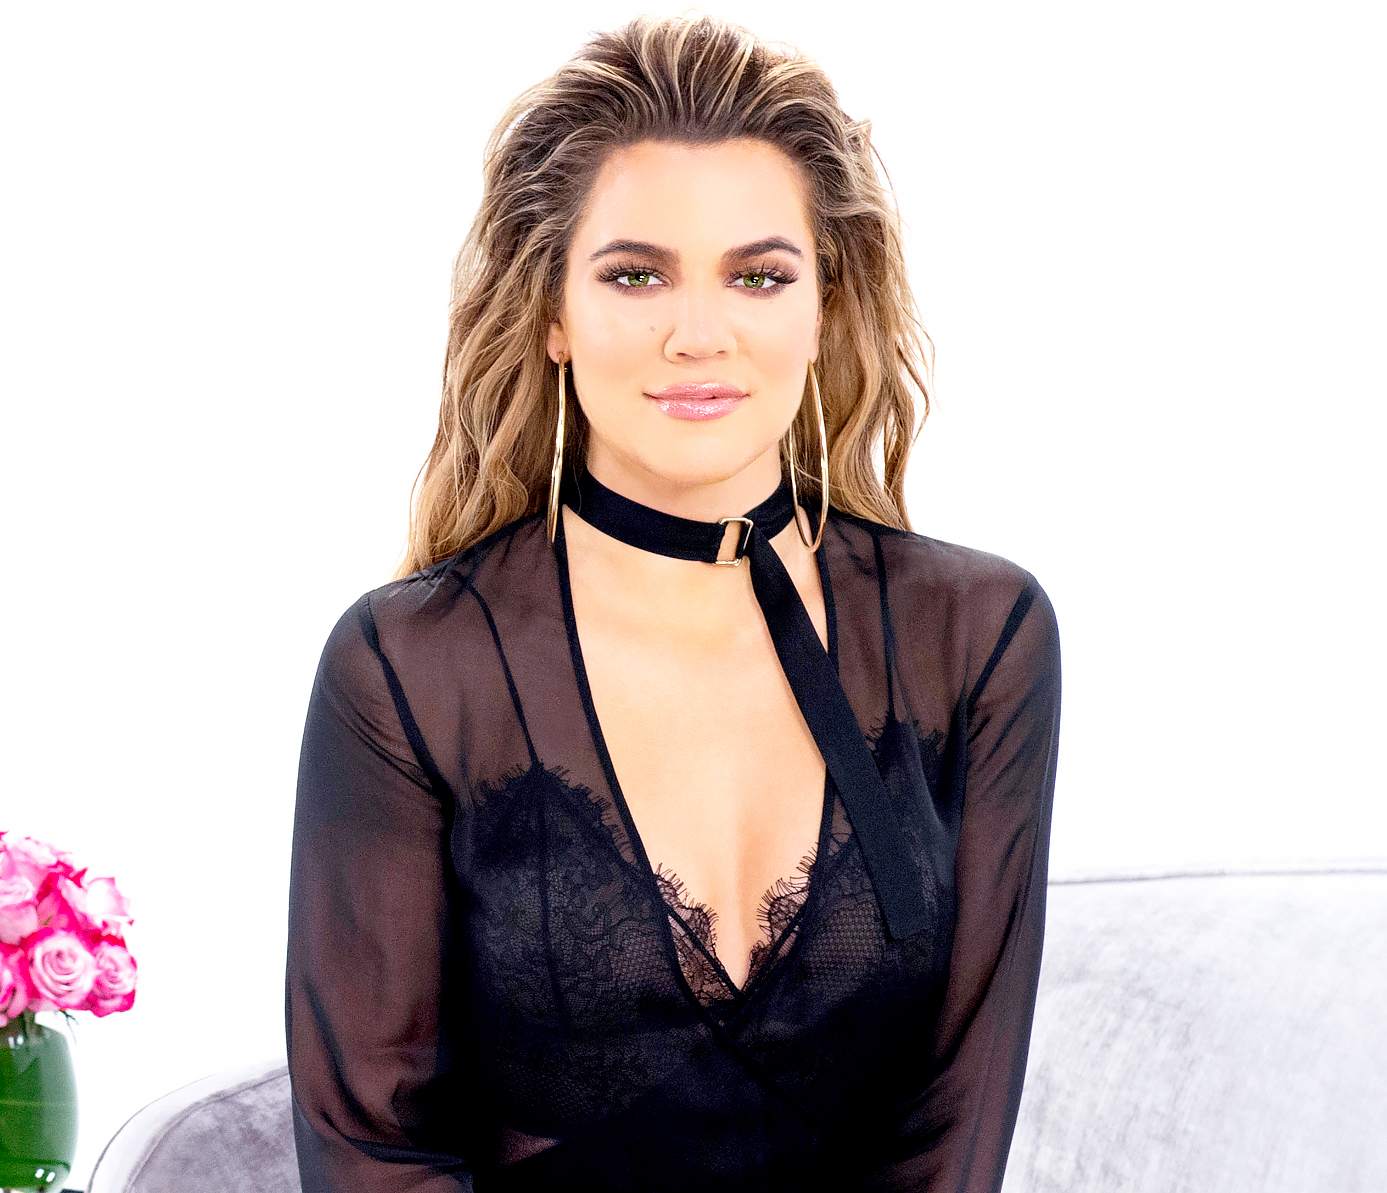 Khloe Kardashian Reveals One Possible Name for Her New Baby